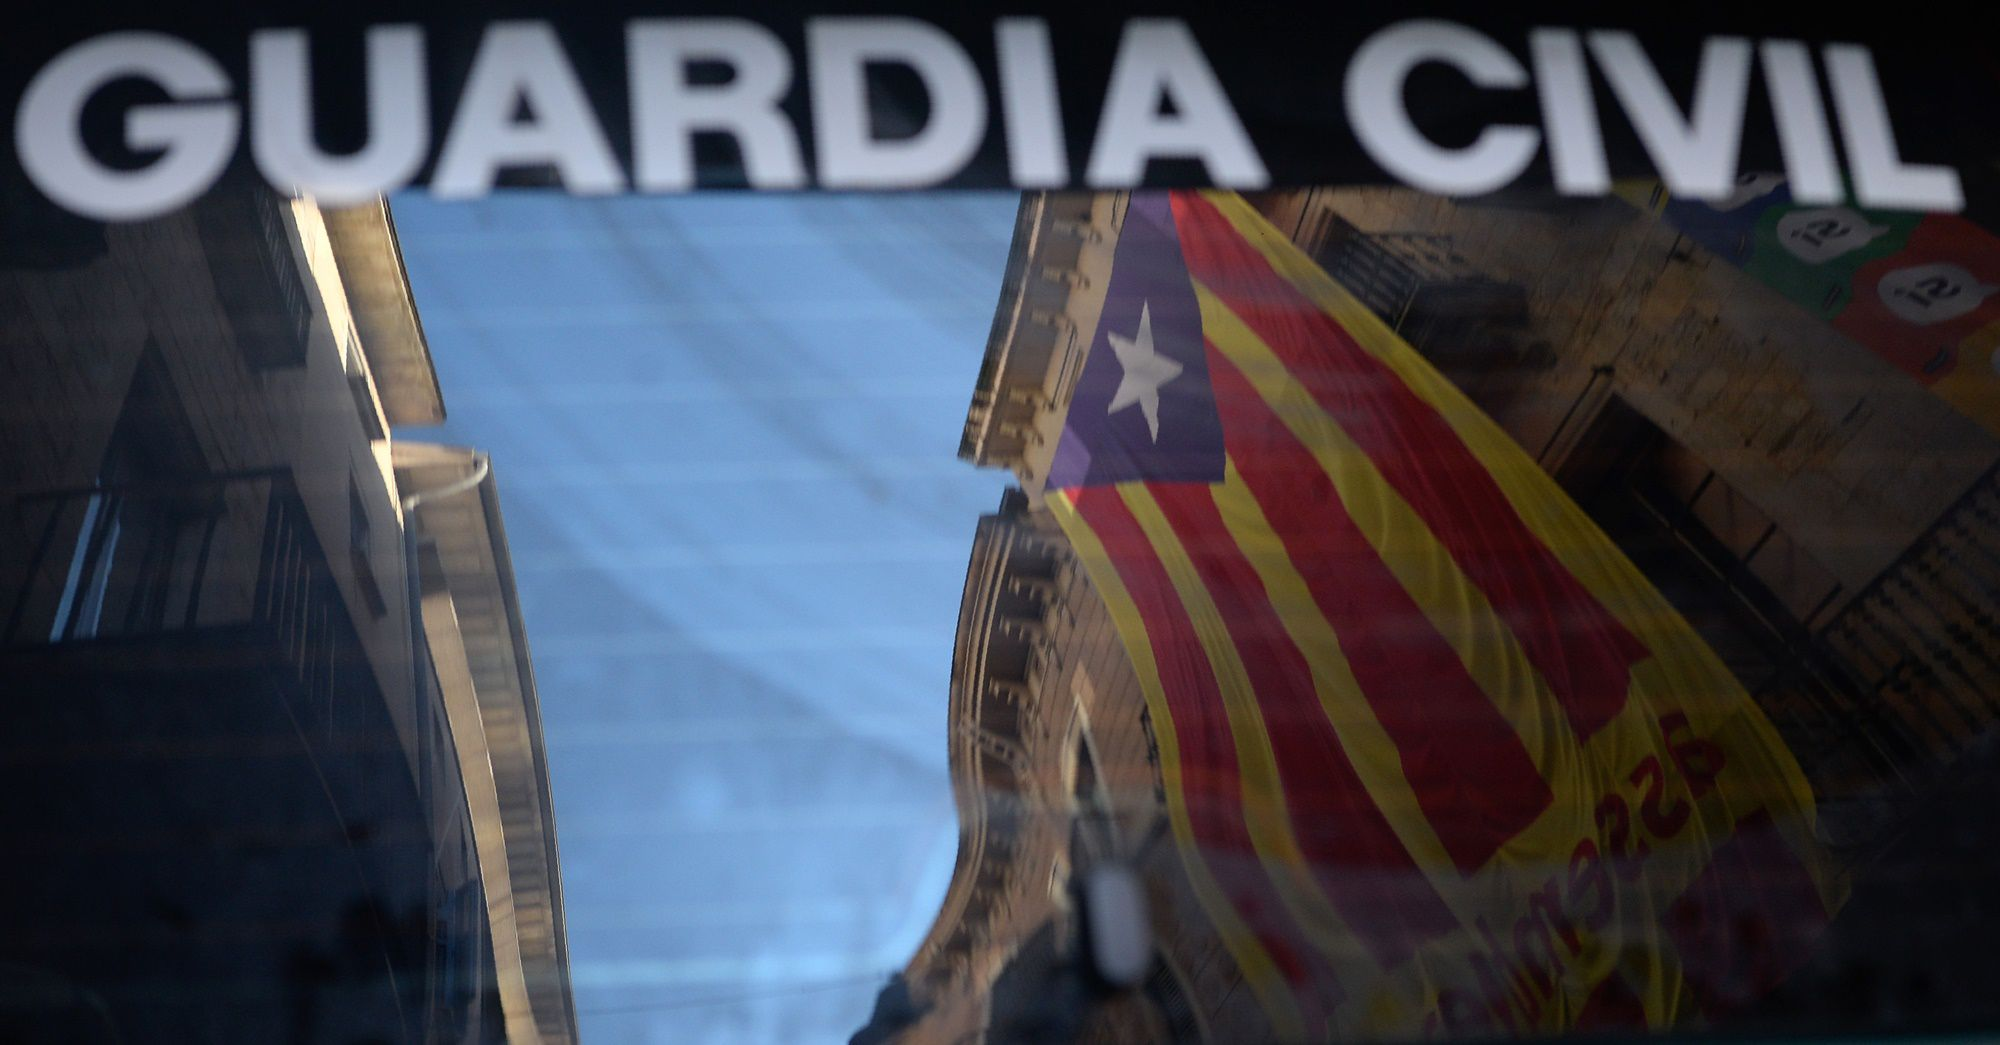 A 'Estelada' (Catalan pro-independence flag) is reflected on the window of a Spanish Civil Guard car in front of the headquarters of the company of waters of Girona on September 19, 2017. The Spanish Guardia Civil registered the company of waters of Girona for alledged misappropriation of funds, when Catalan President Carles Puigdemont was mayor of Girona.  / AFP PHOTO / Josep LAGO        (Photo credit should read JOSEP LAGO/AFP/Getty Images)